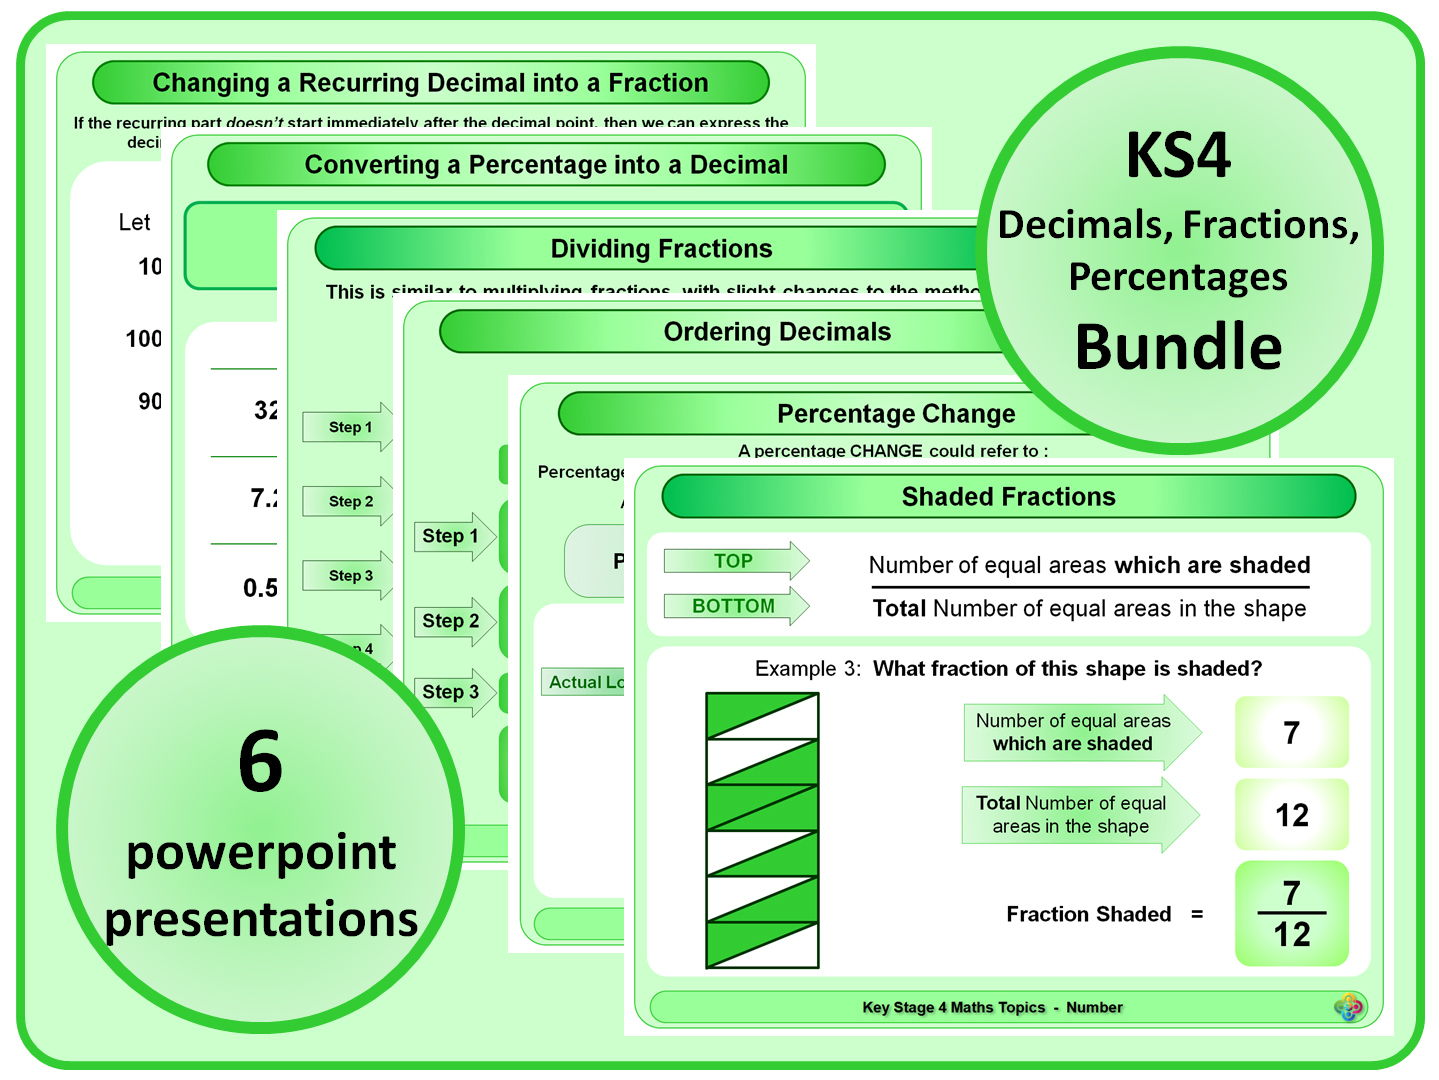 KS4 Decimals, Fractions, Percentages BUNDLE